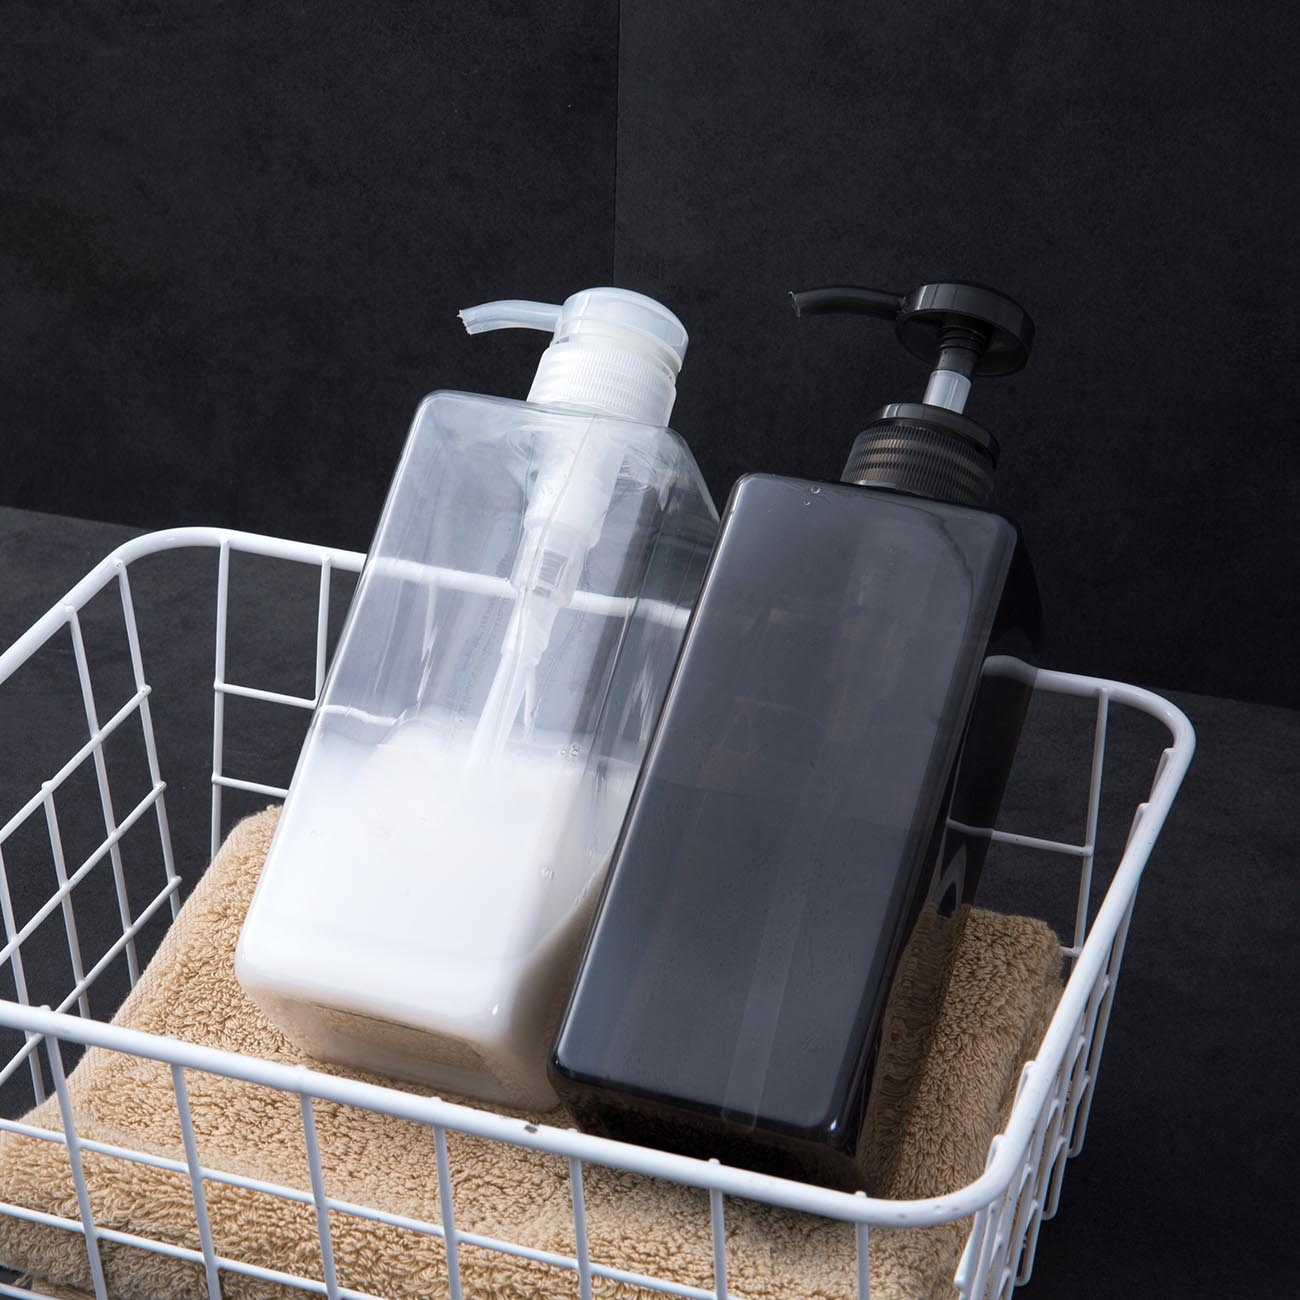 1Pc Soap Dispenser Pump Hand Sanitizer Holder Cosmetics Lotion Shampoo Bottle Dispenser Travel Soap Bottle Bathroom Accessories